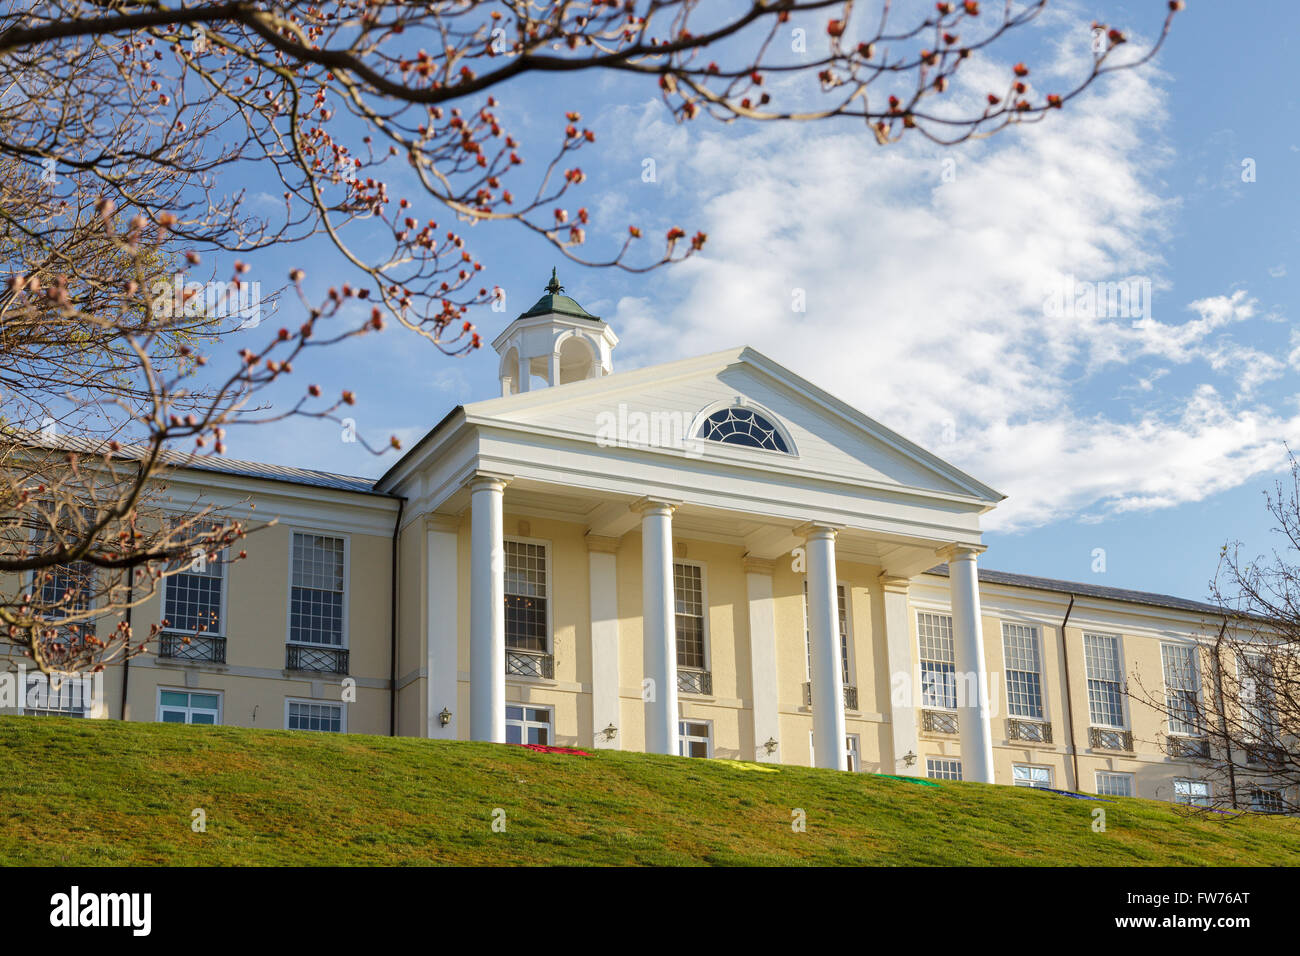 Mary Baldwin College, Staunton, Shenandoah Valley, one of 3 women's colleges in Virginia, USA. - Stock Image